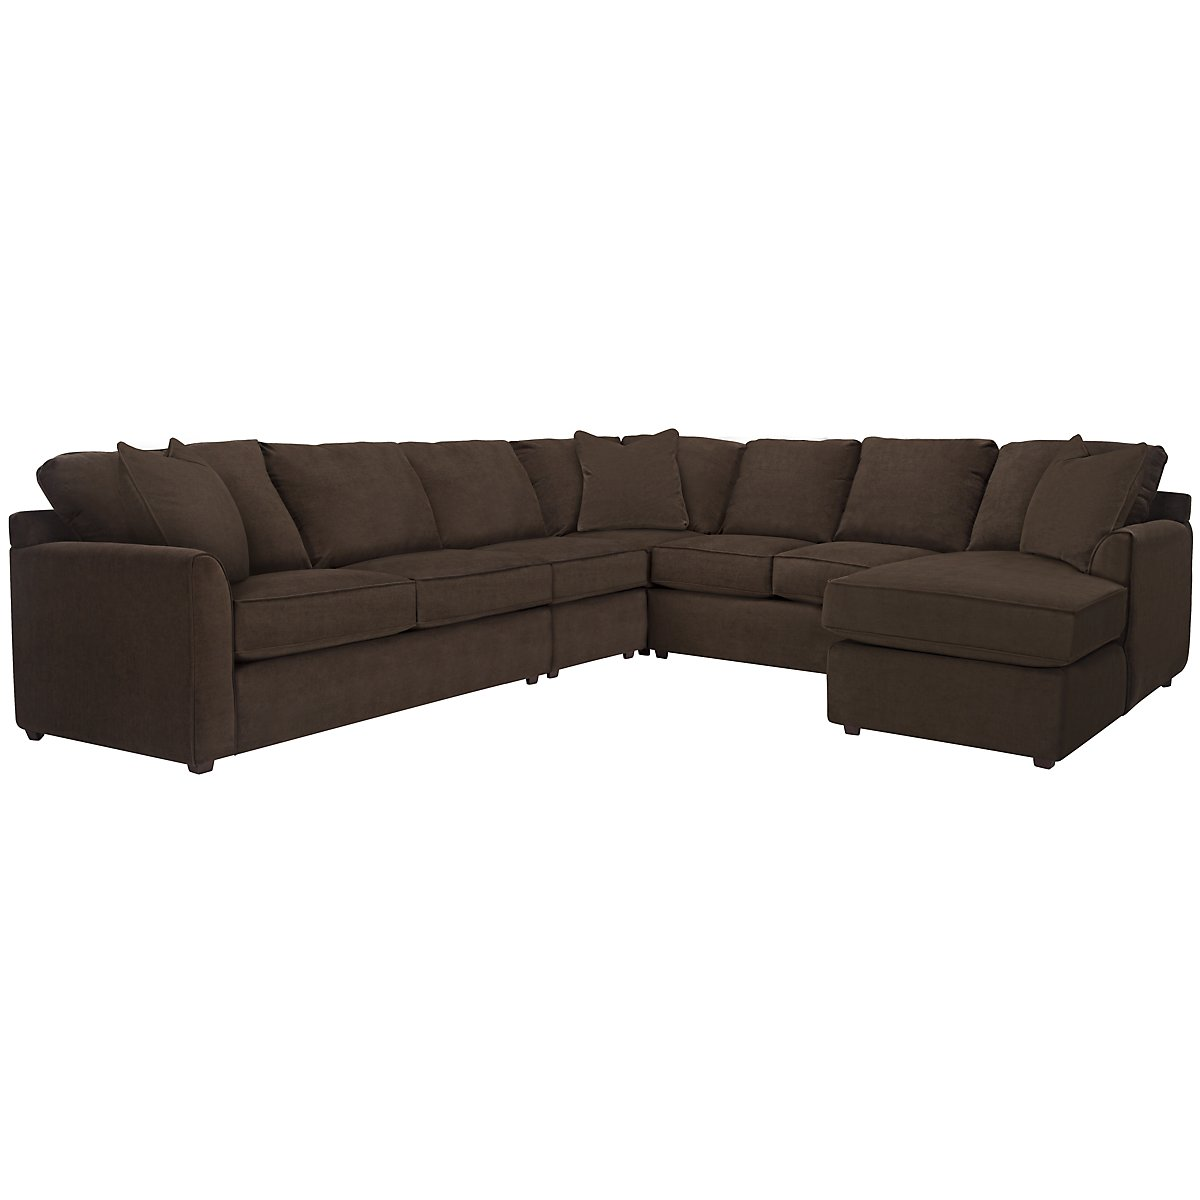 Express3 Dark Brown Microfiber Large Right Chaise Sectional